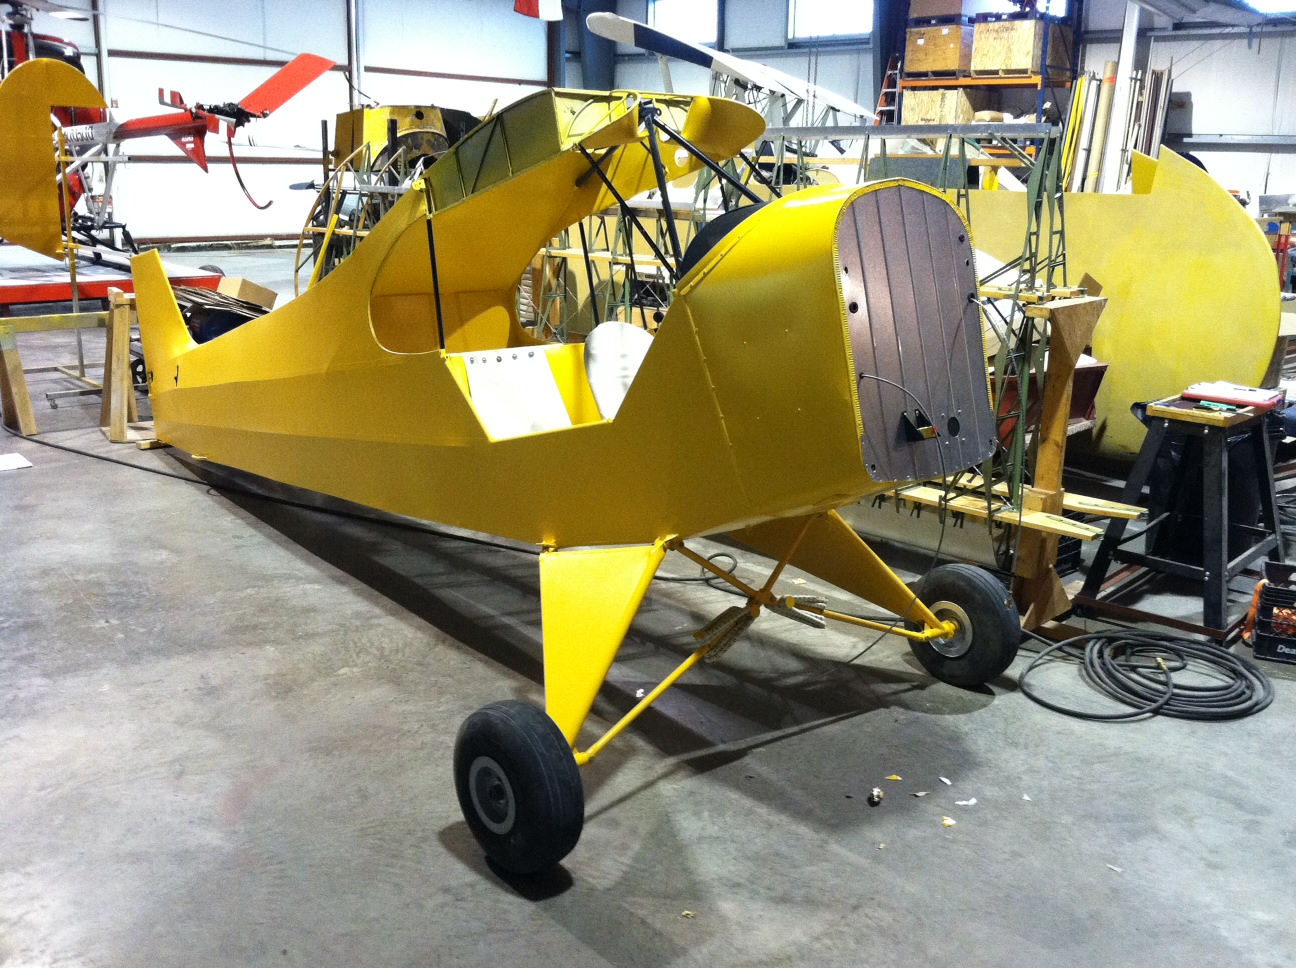 Texas Aircraft Restoration, Fox Aviation Services